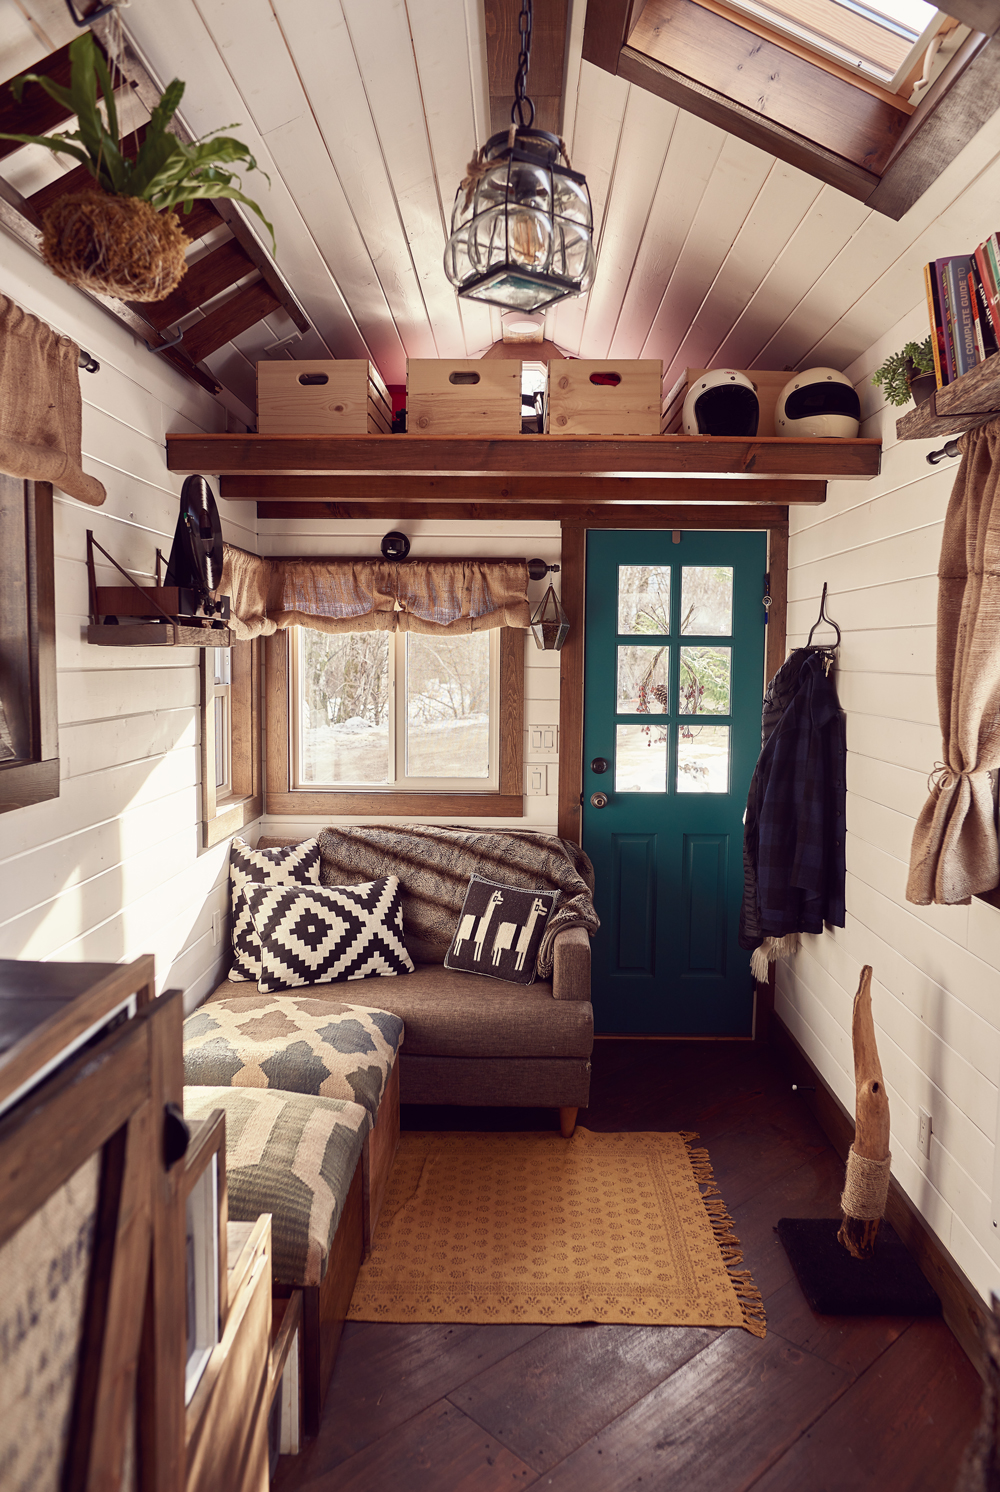 tamara_jaswal: Tiny home interior